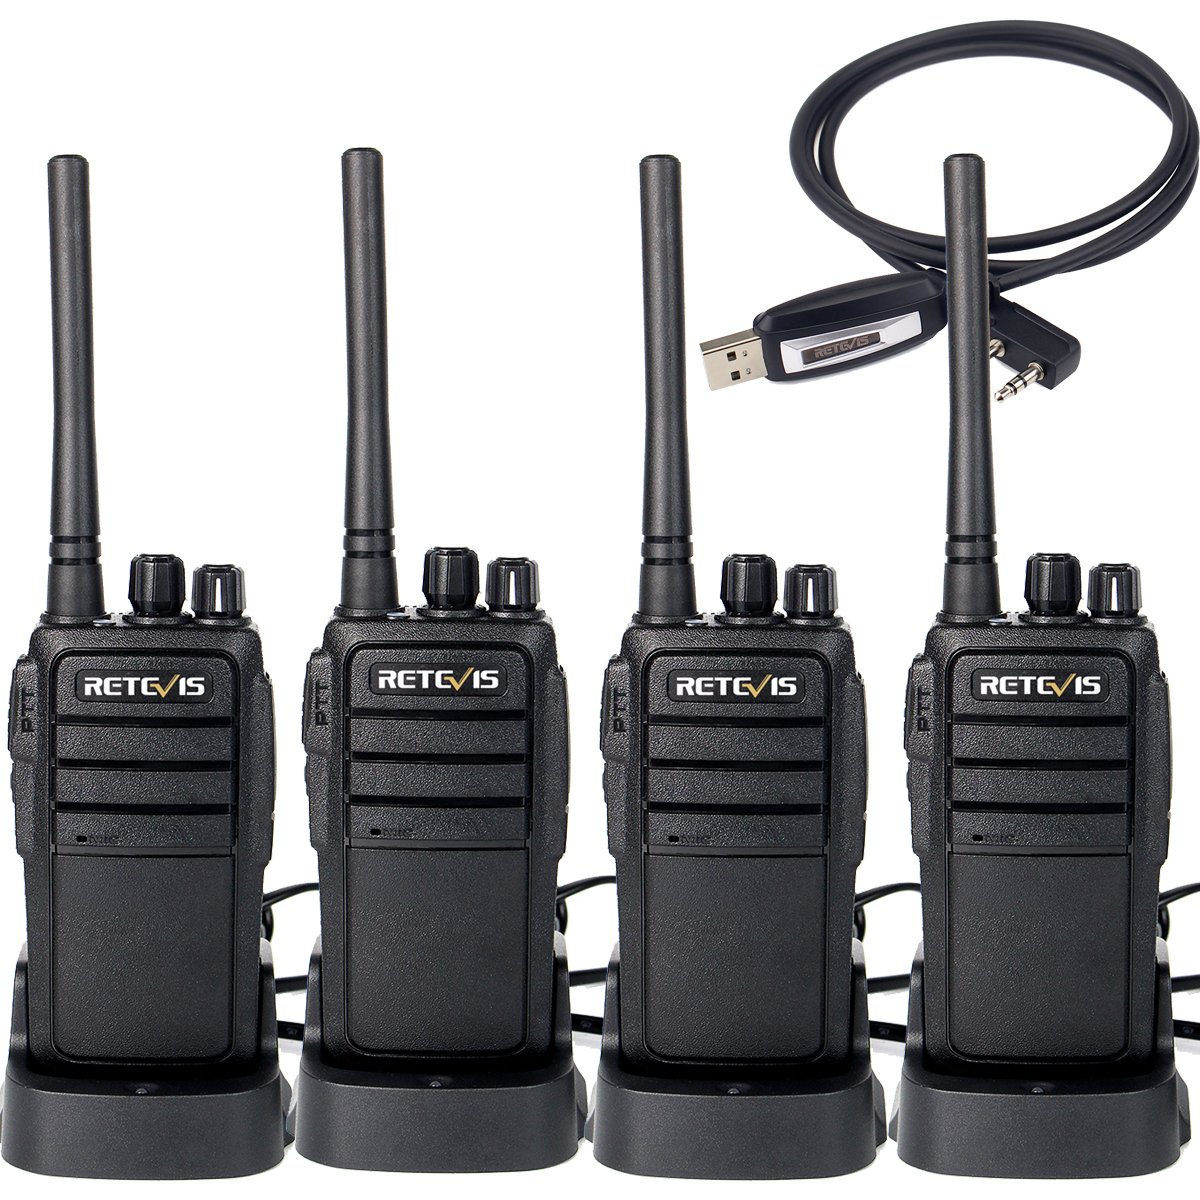 Retevis RT21 Walkie Talkies Rechargeable 16 Channels FRS License-Free 2 Way Radios( 4 Pack) with Programming Cable